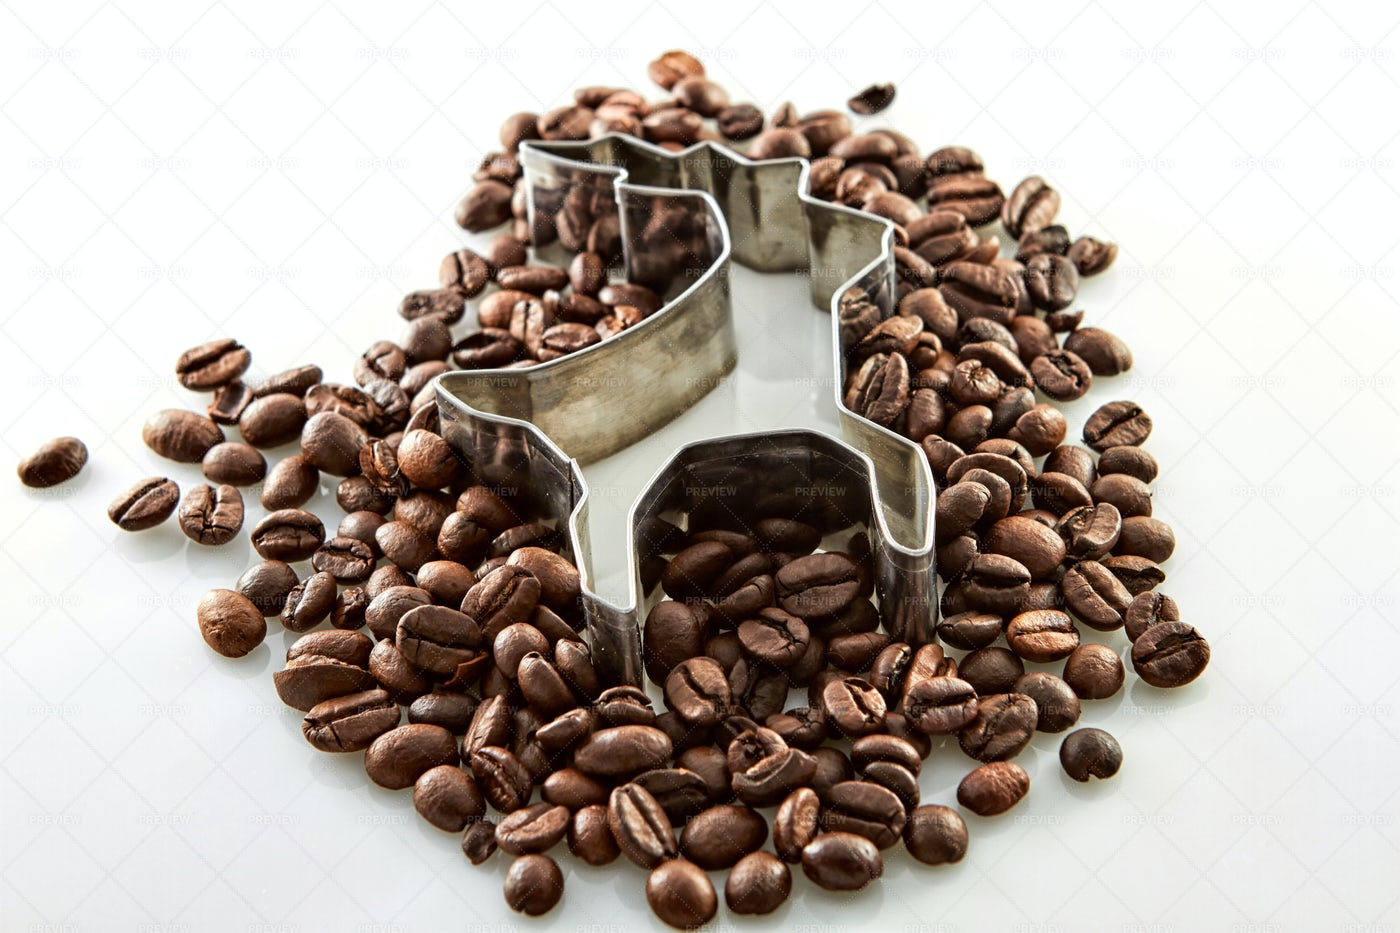 Cookie Cutter And Coffee: Stock Photos